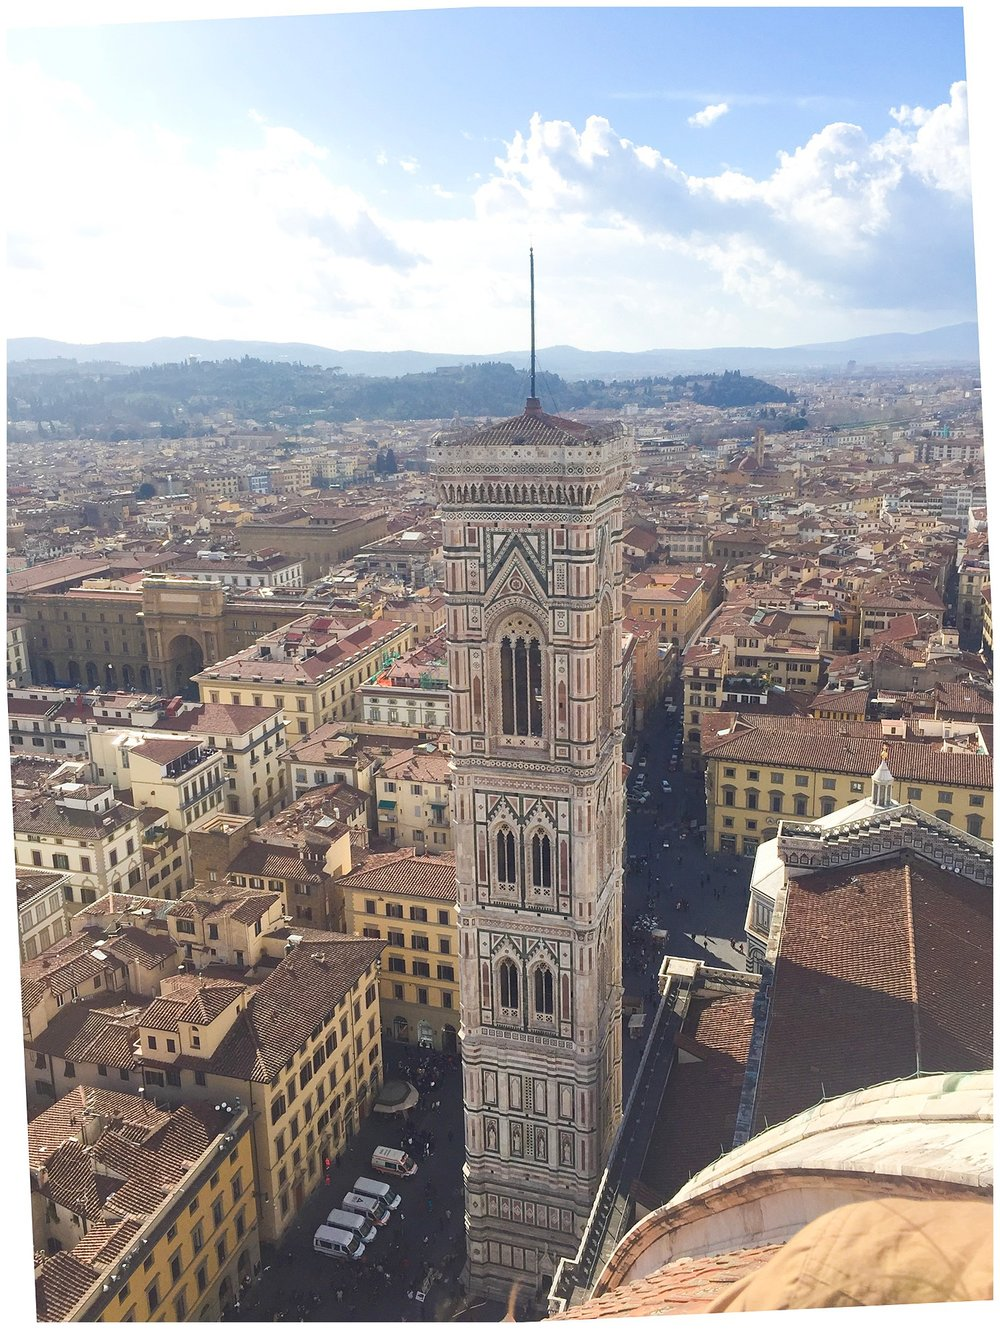 The Duomo Bell Tower in Florence